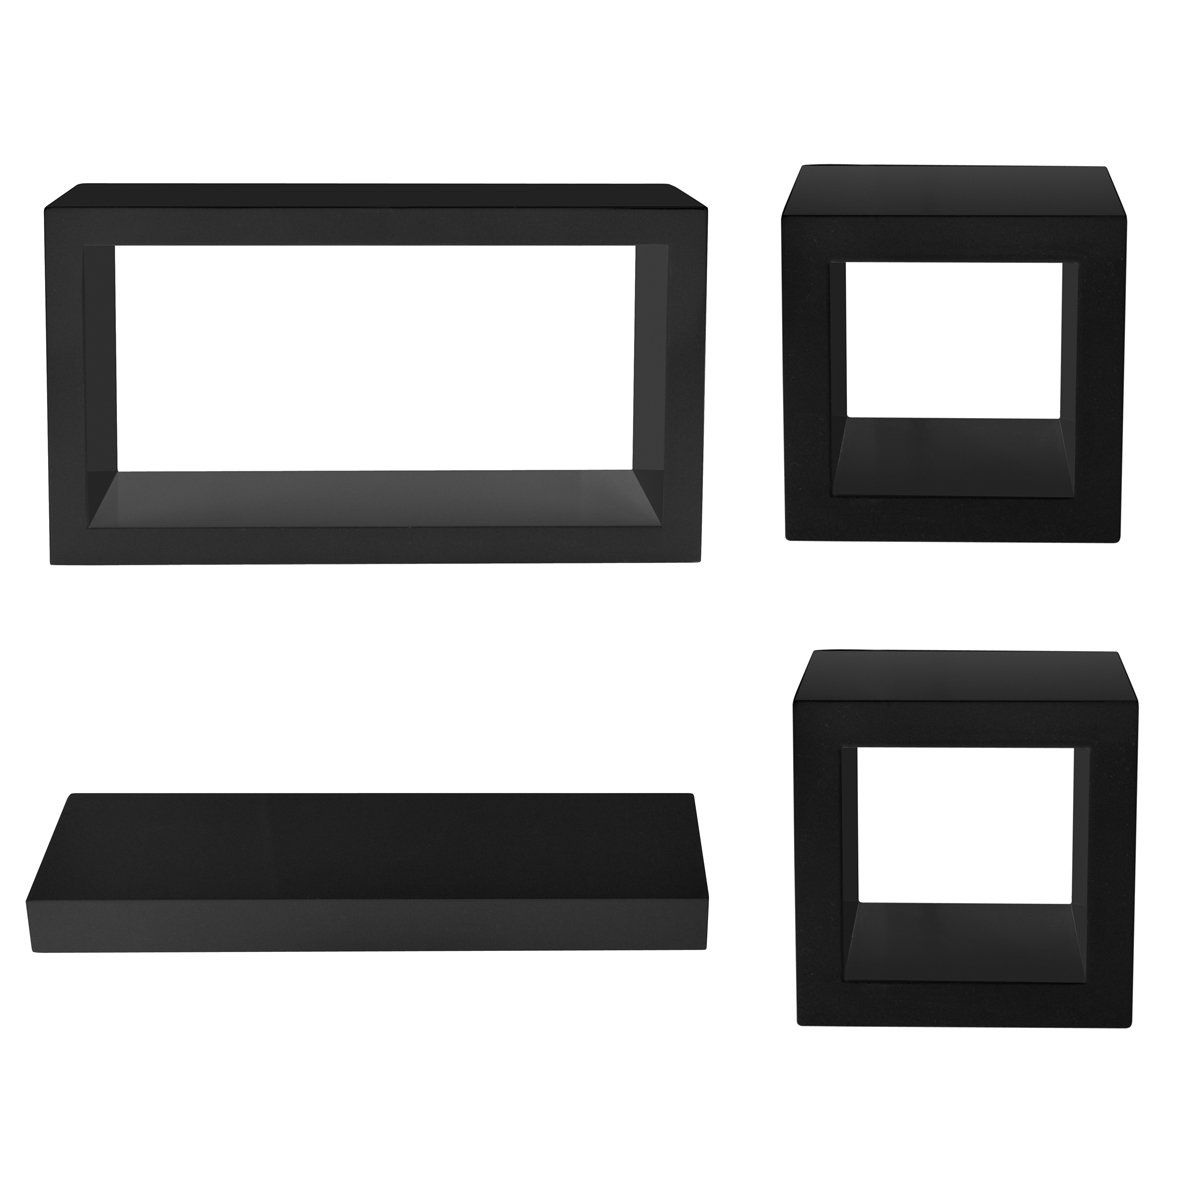 ☆chinkyboo creative weden wood effectcircles roundtshelf  - ☆chinkyboo creative weden wood effectcircles roundtshelf retro floatingwall cube shelf storage display unit cubes shelves boards☆ (set ofblack)